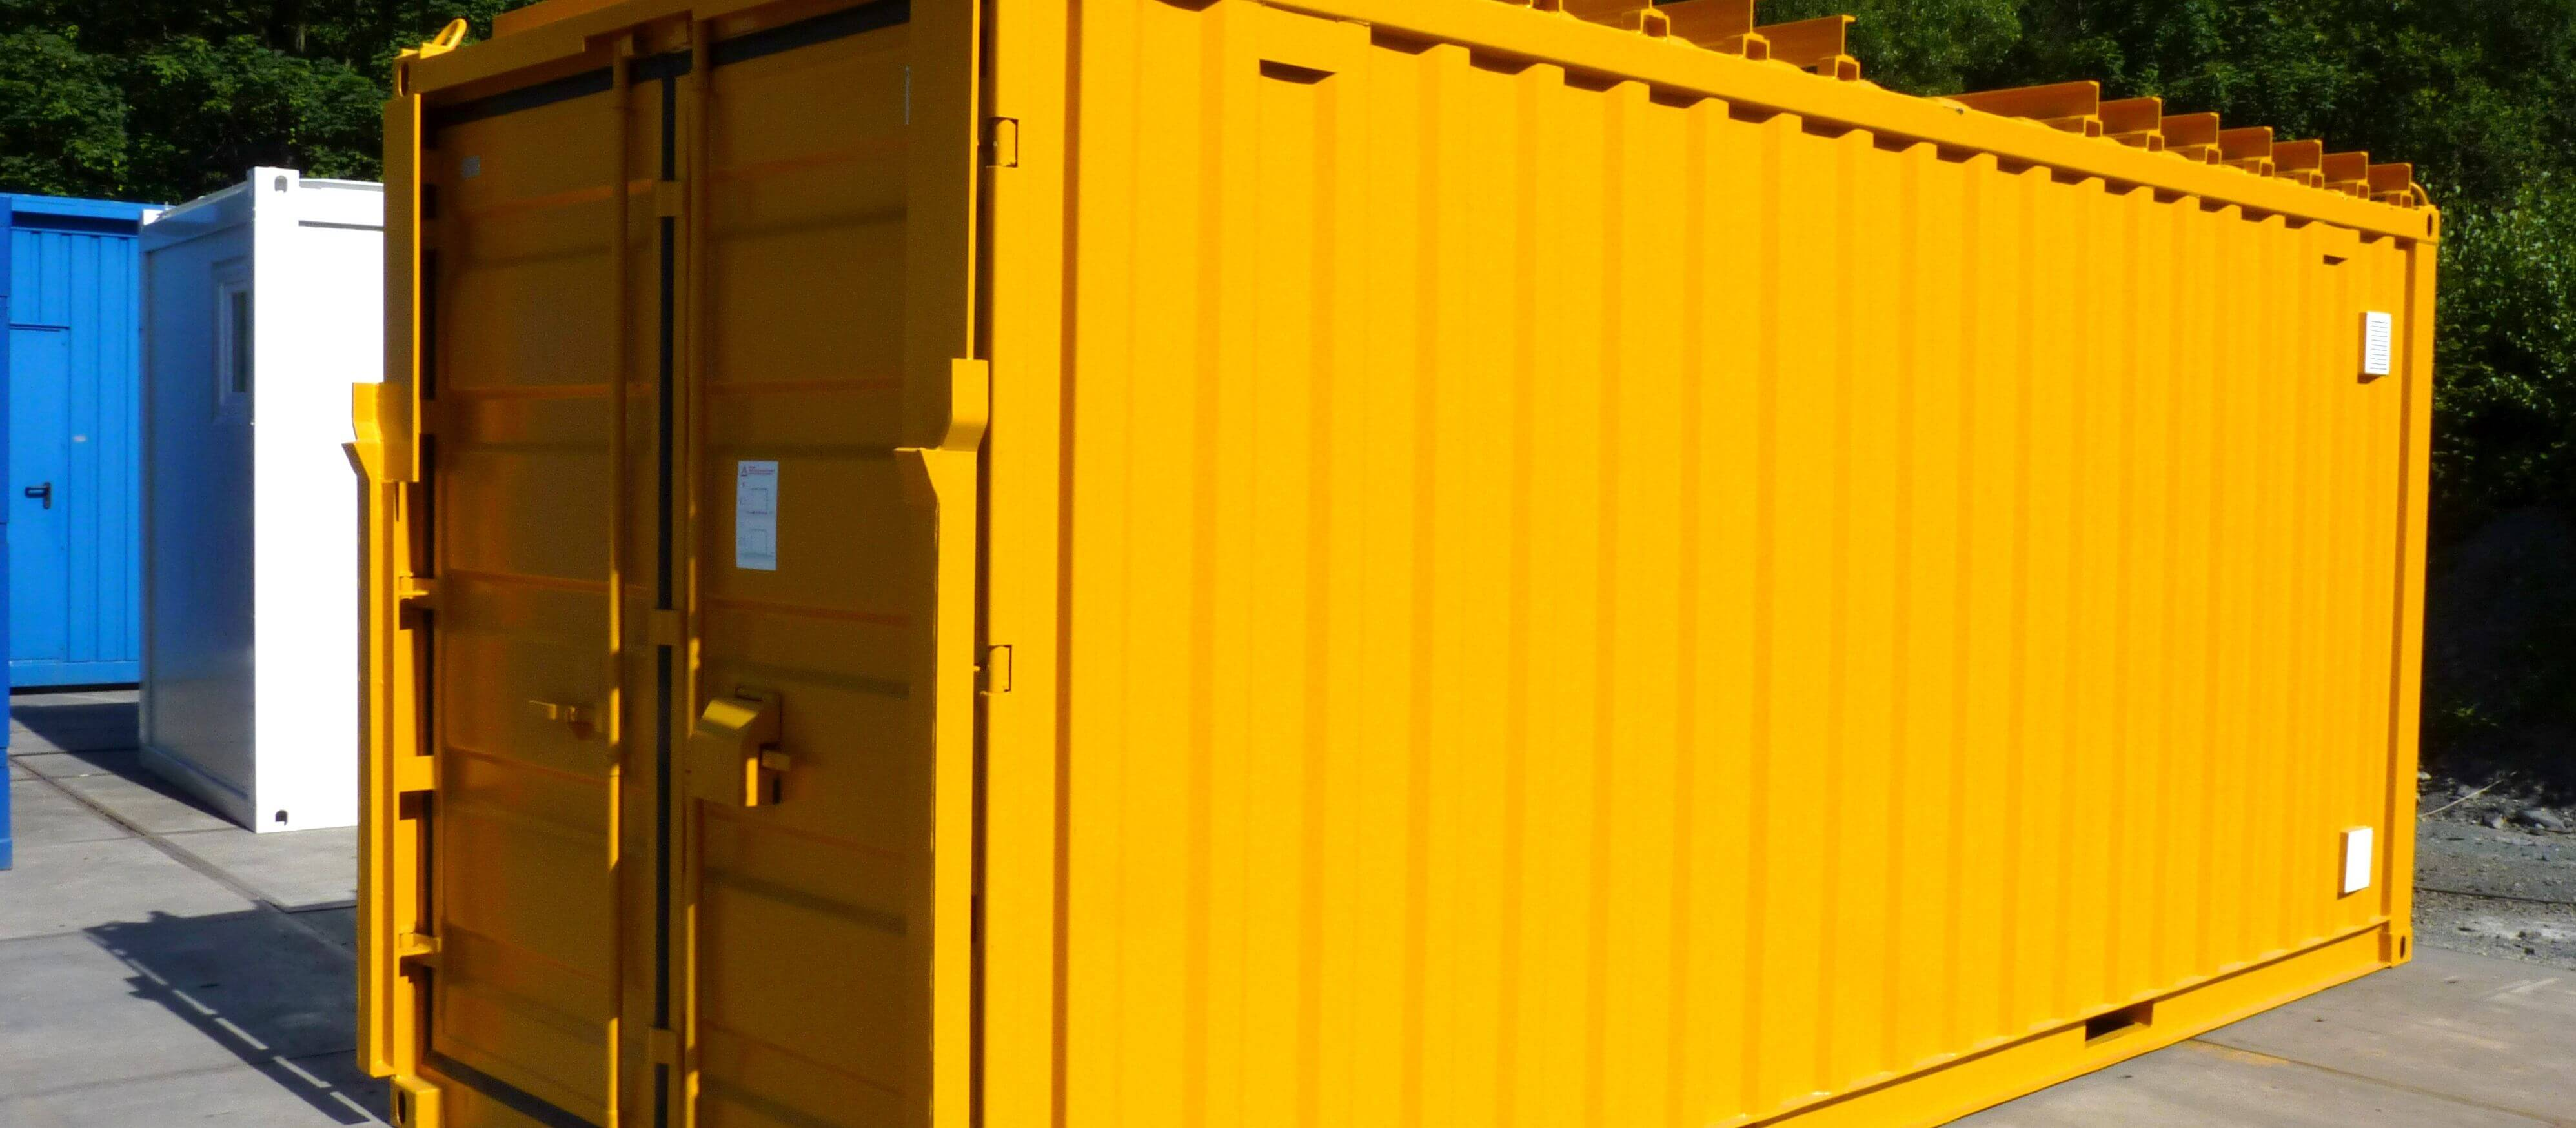 Lagercontainer, Technikcontainer